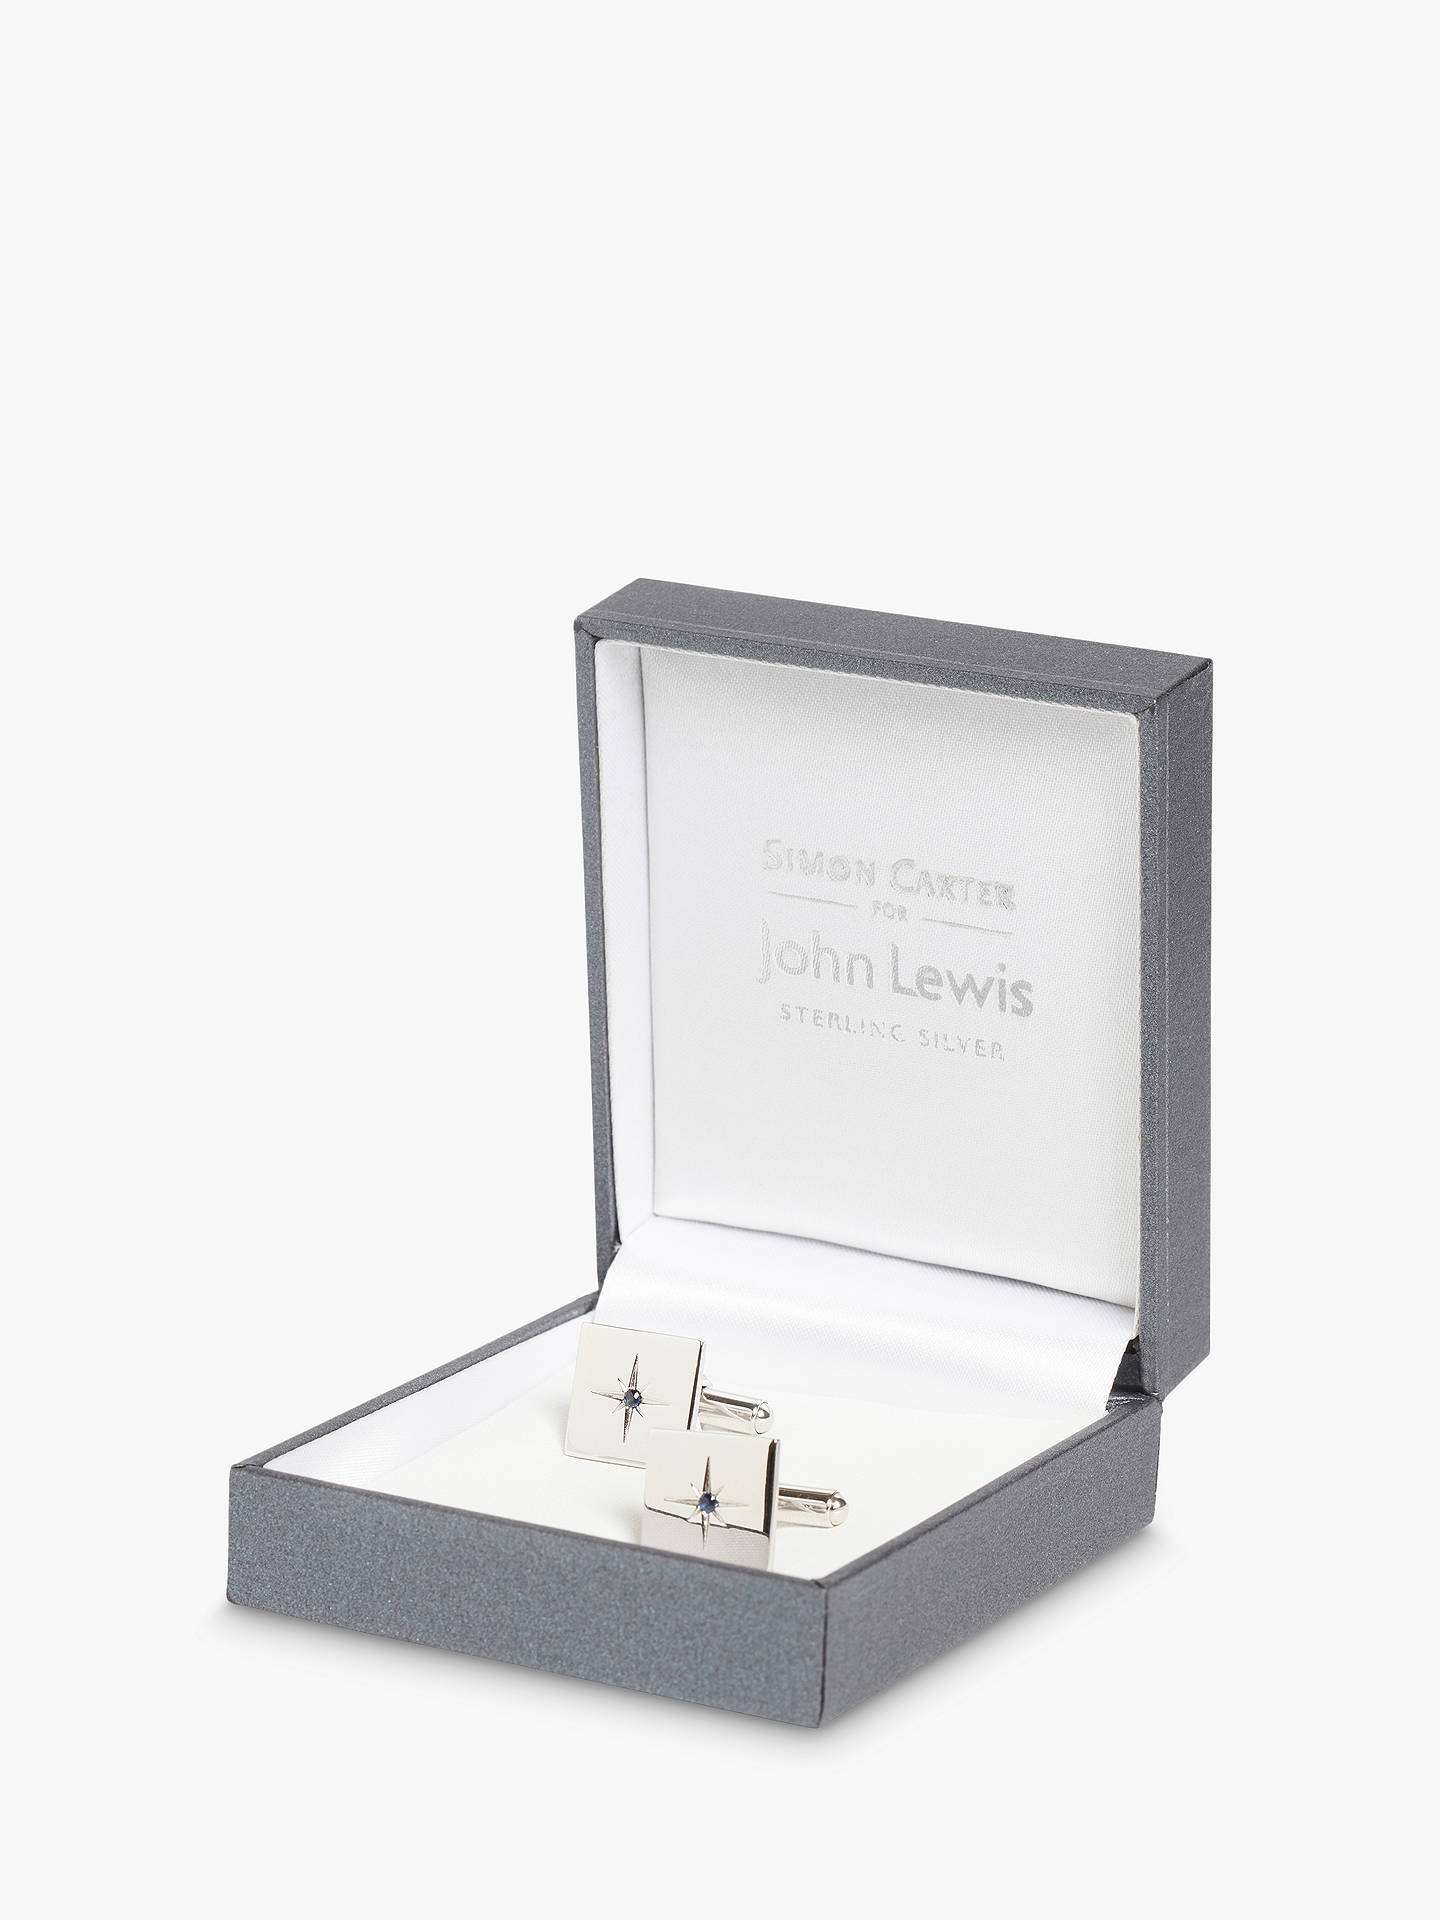 BuySimon Carter for John Lewis Square Sterling Silver Sapphire Cufflinks, Silver Online at johnlewis.com